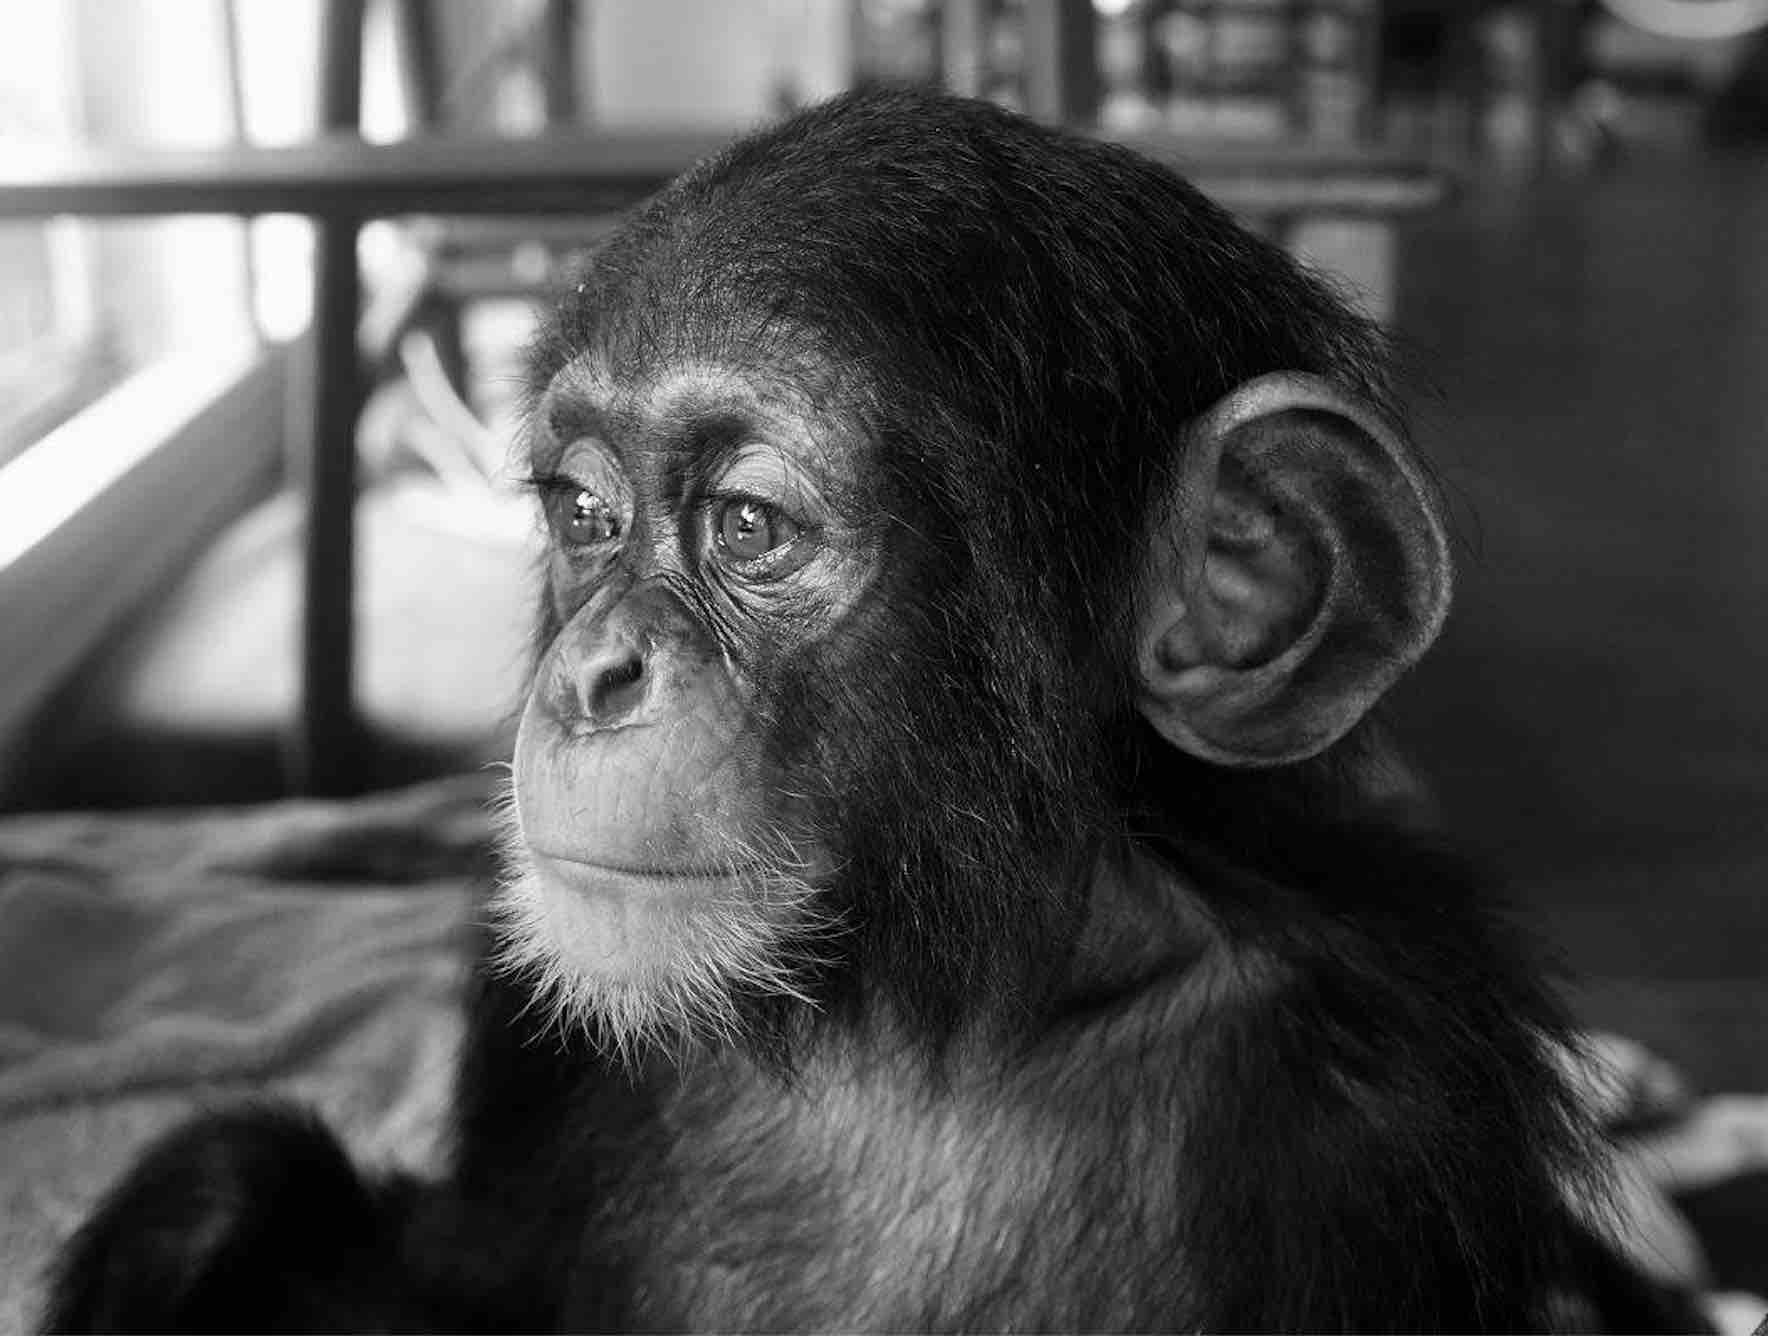 Chimpanzee pictures chimpanzees are all black but - When Orphaned Chimps Arrive At Liberia Chimpanzee Rescue Protection Caregivers Work To Help Them Recover From The Trauma Of Losing Their Families